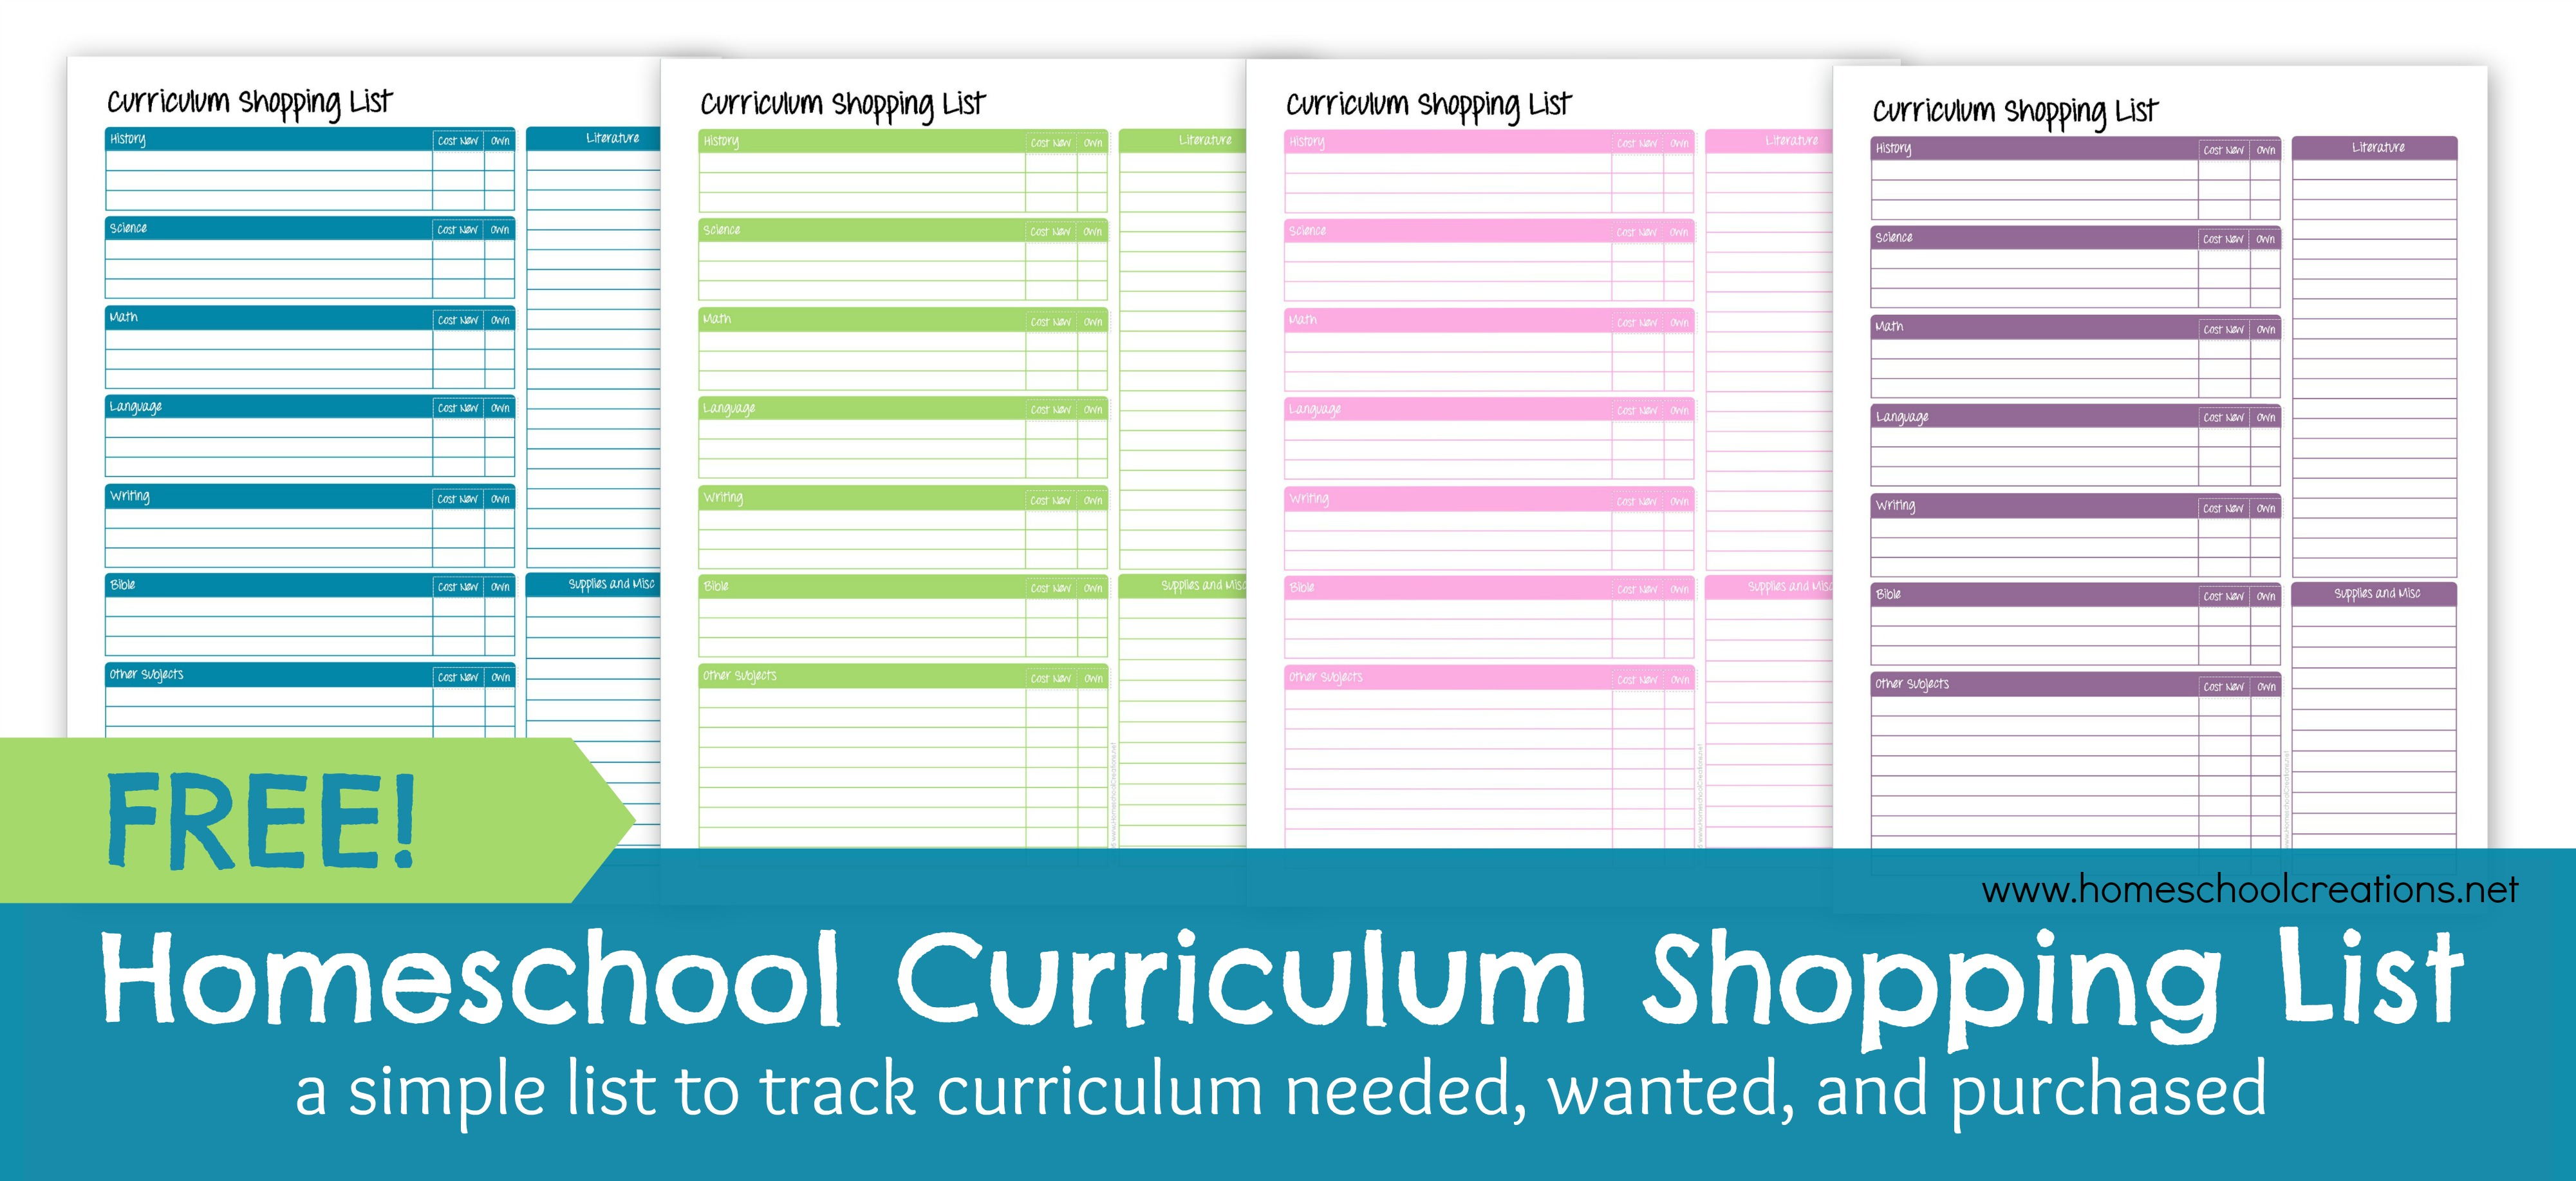 homeschool curriculum shopping list free printable